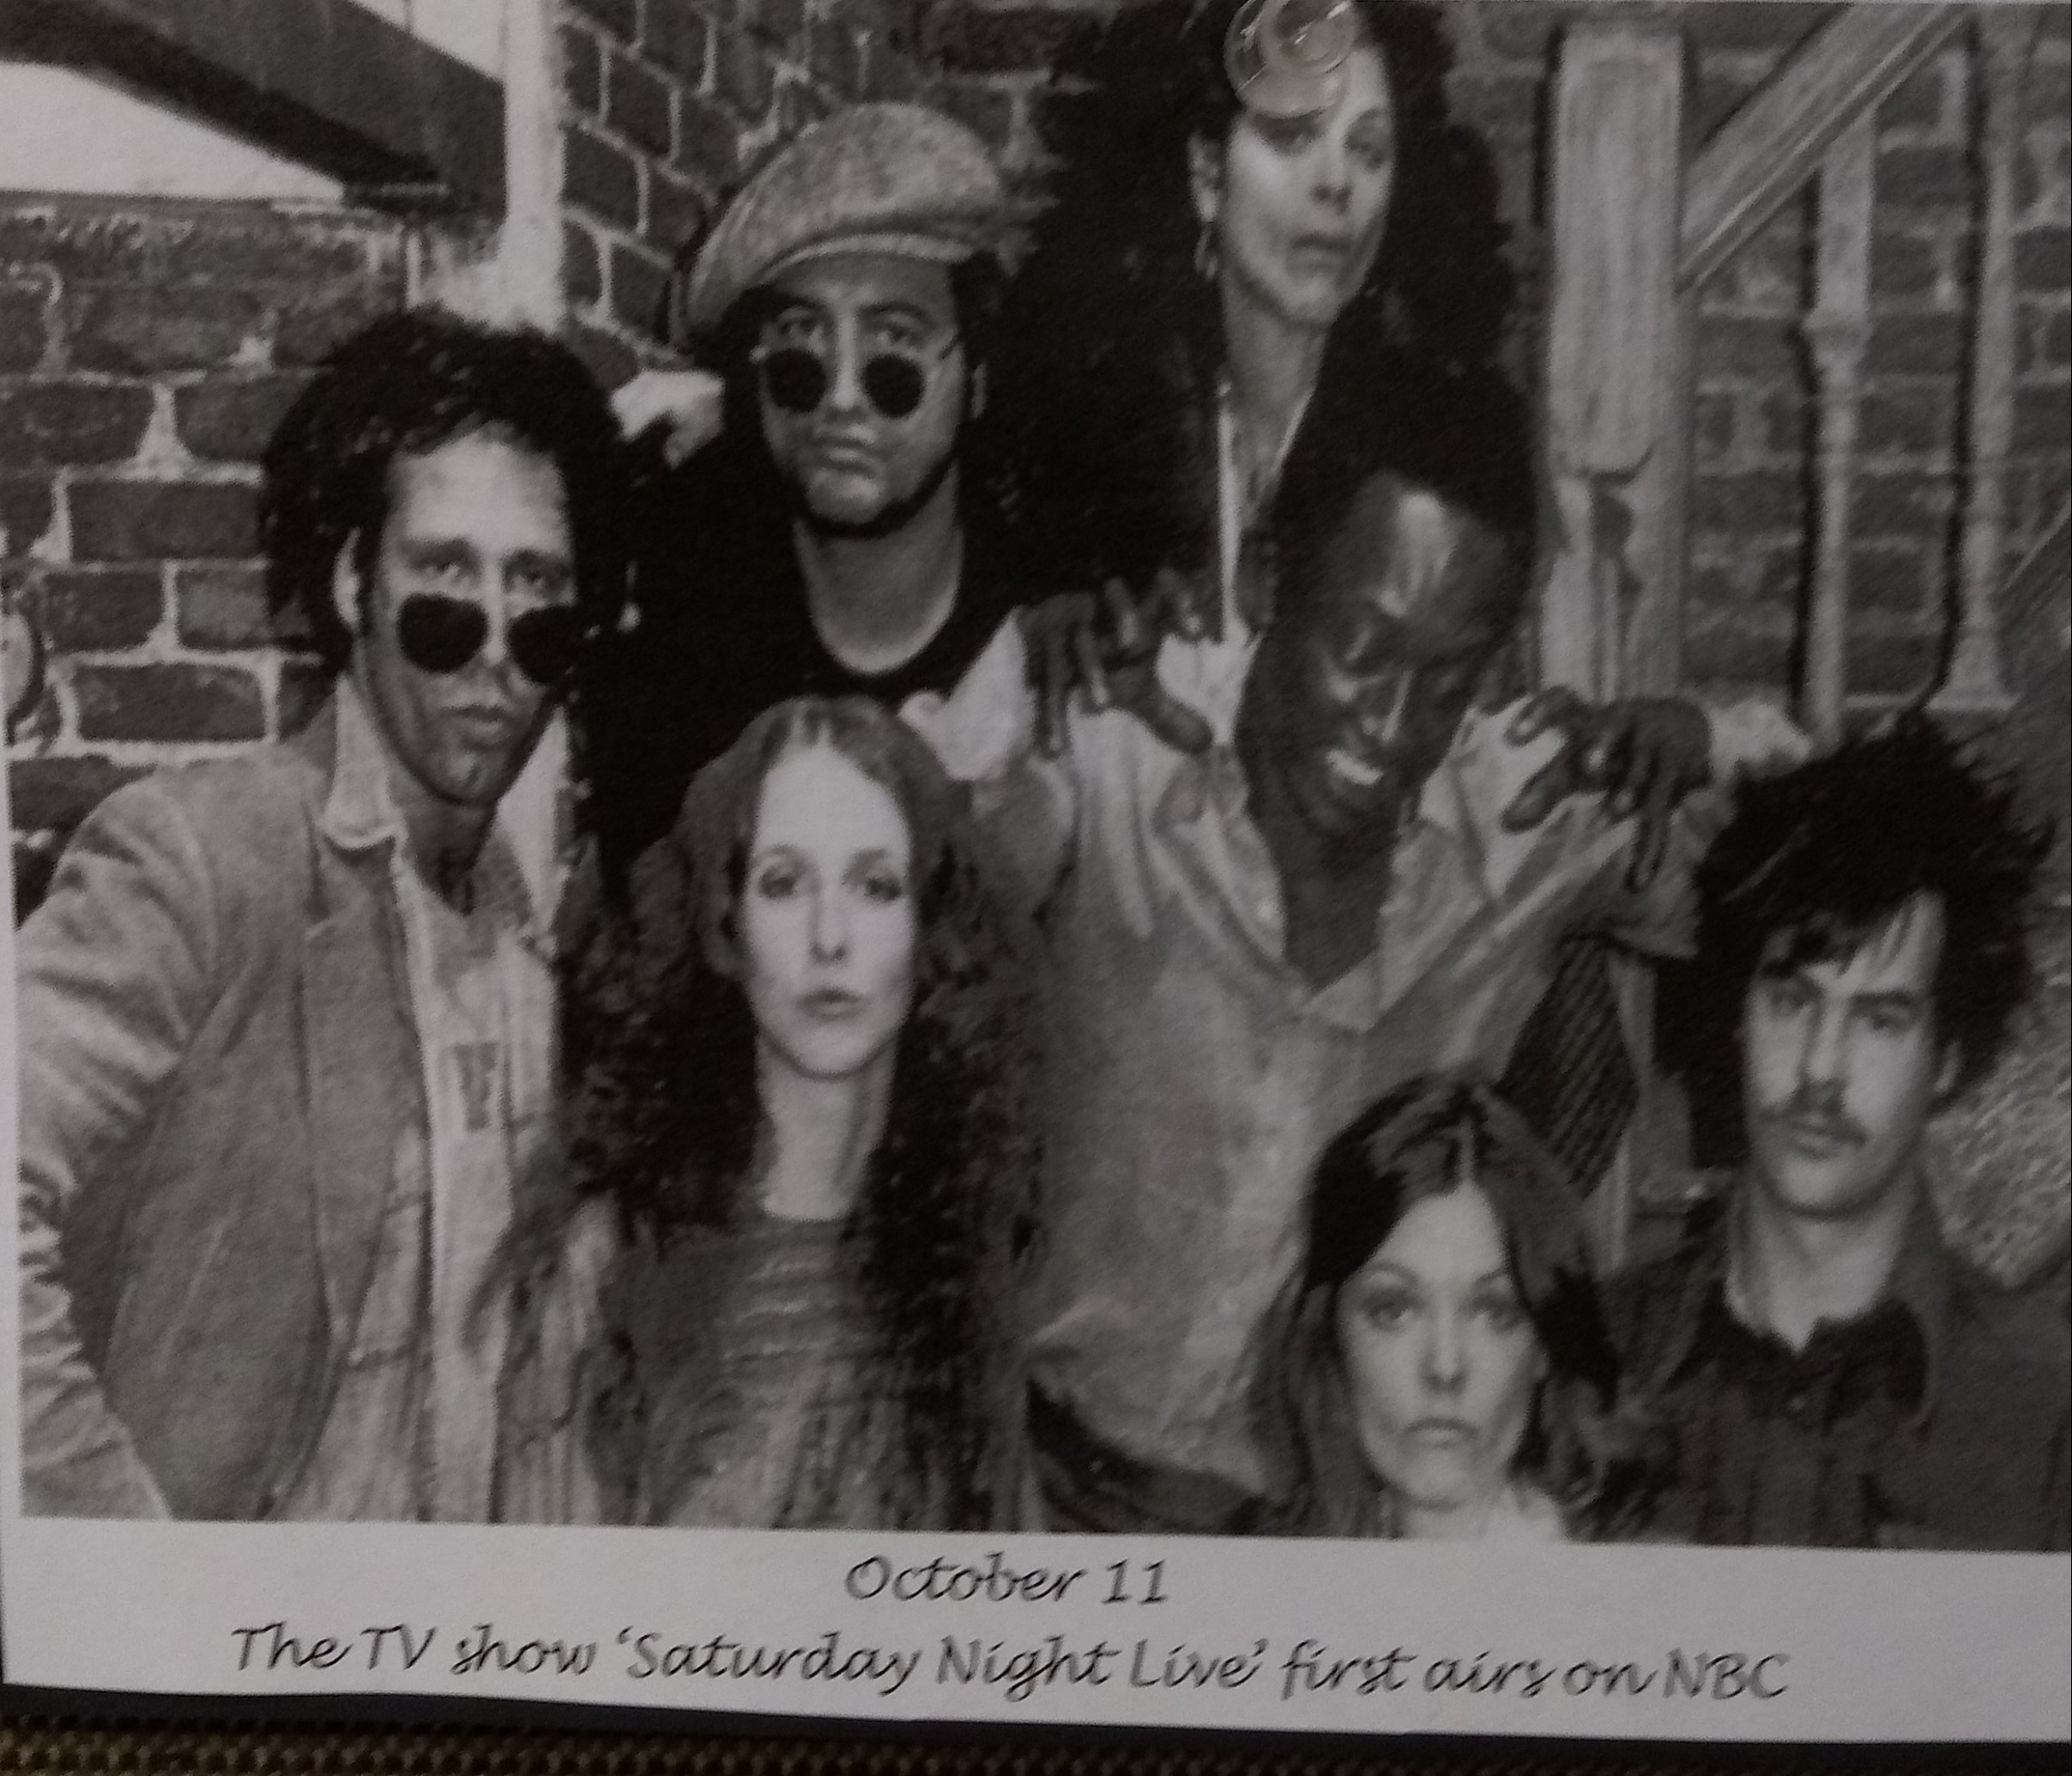 Photograph of a group of actors from the 1st season of the Saturday Night Live show.